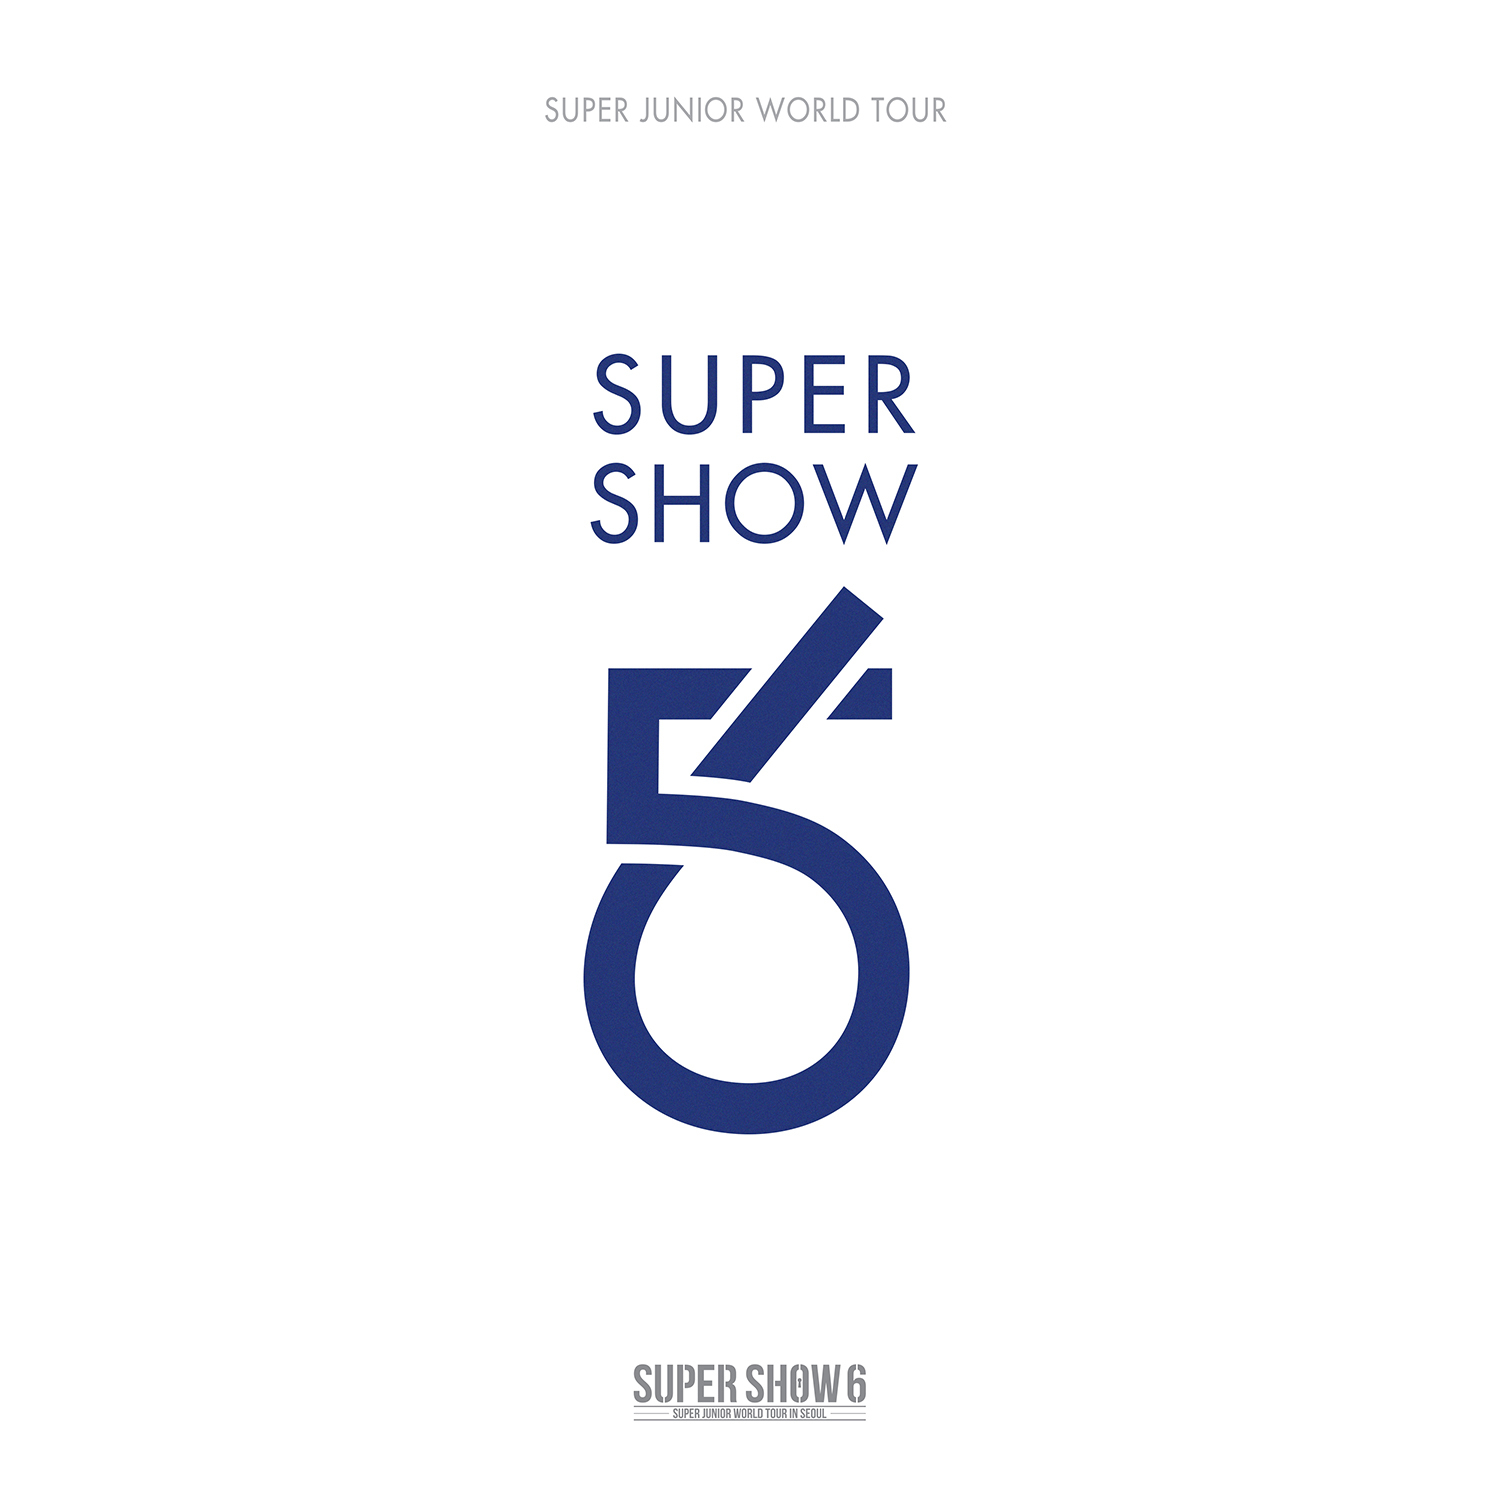 Super Junior - Super Show 6 - 6th World Tour (2CD) K2Ost free mp3 download korean song kpop kdrama ost lyric 320 kbps